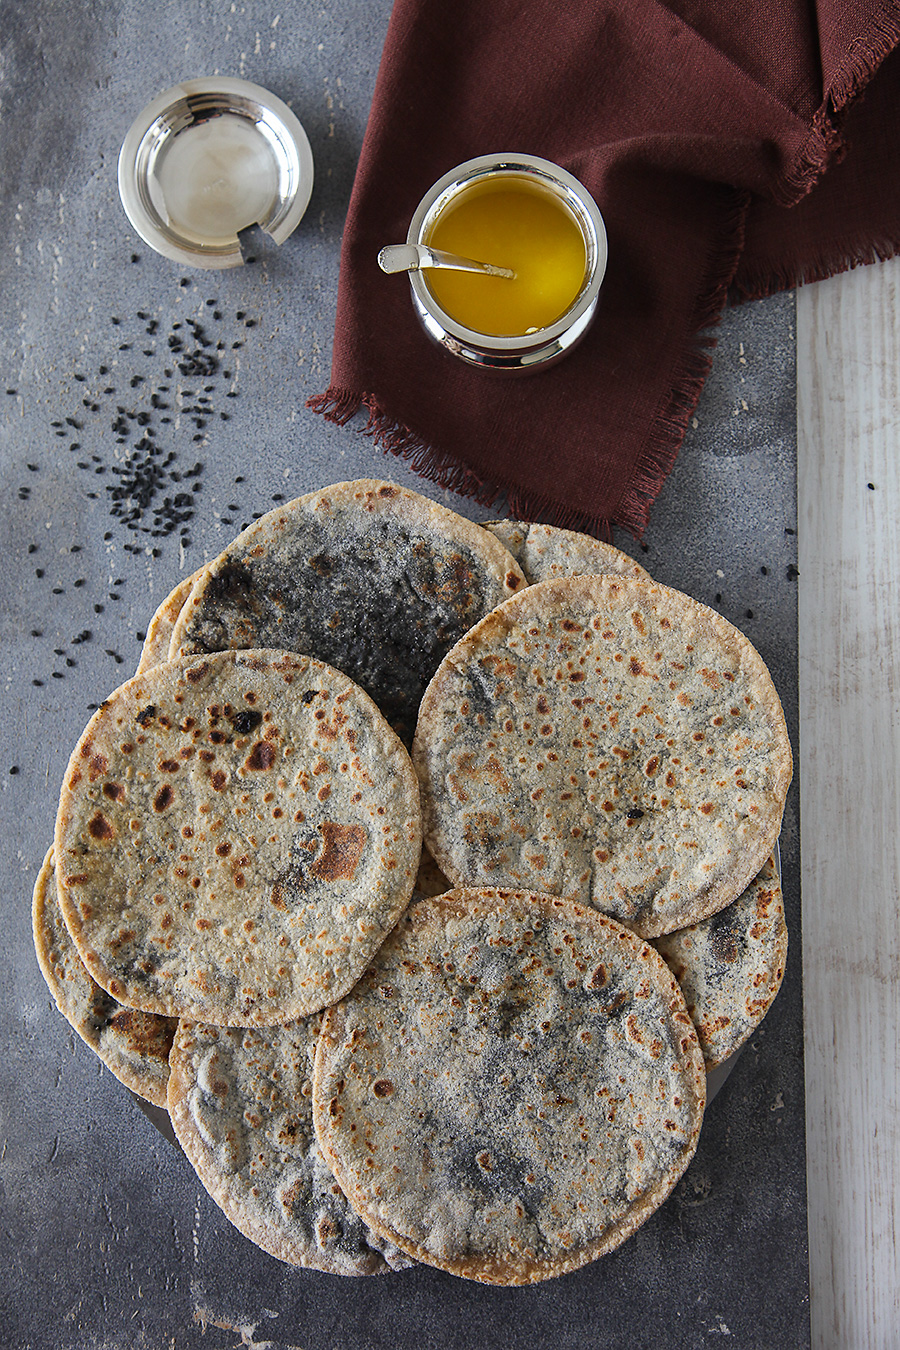 Black Sesame Whole Wheat Pancakes | Yellu Holige